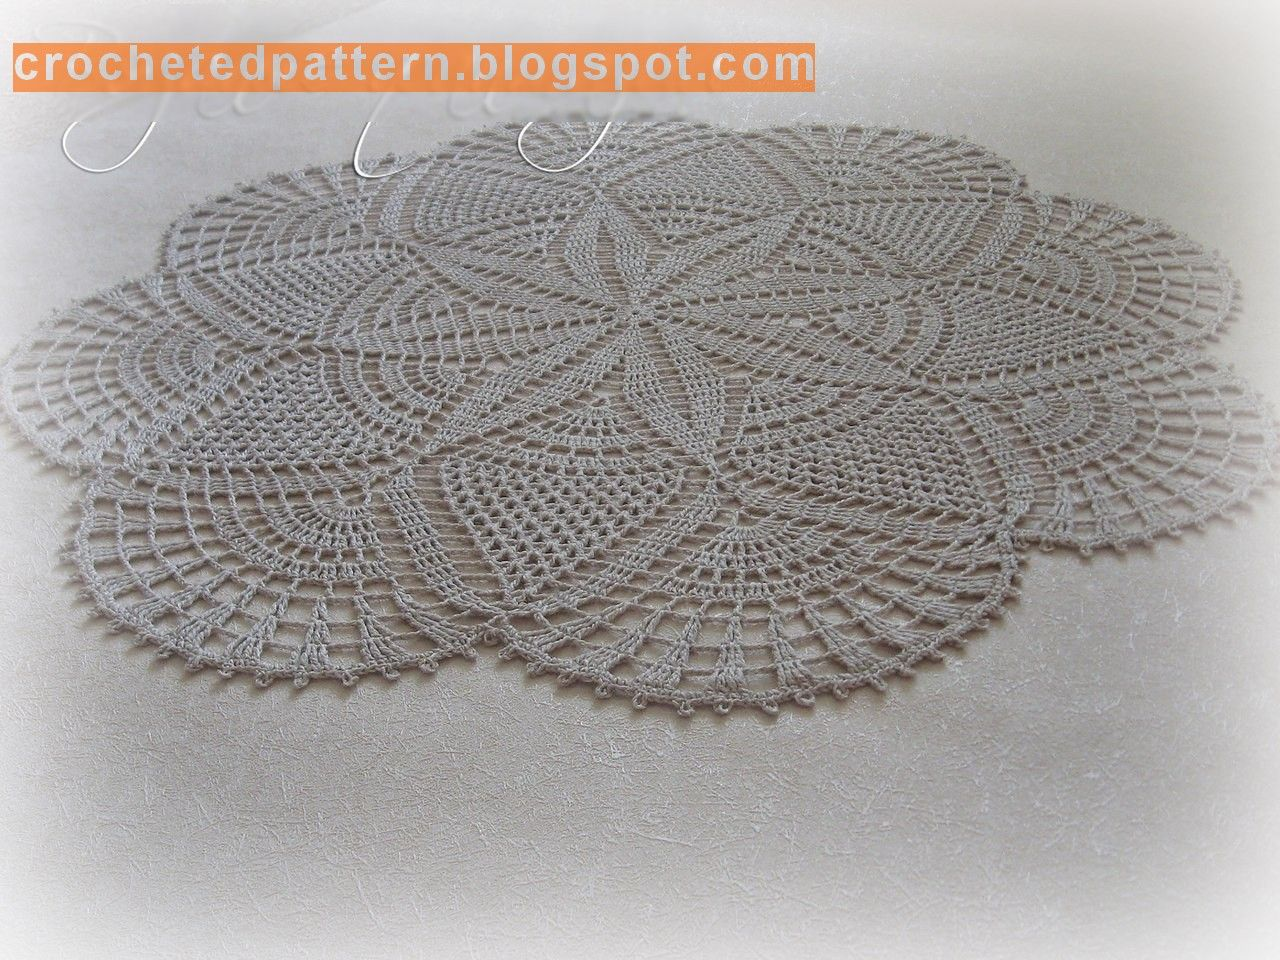 Crochet Pattern باترون مفرش كروشيه دائري Crochet Tablecloth Crochet Patterns Crochet